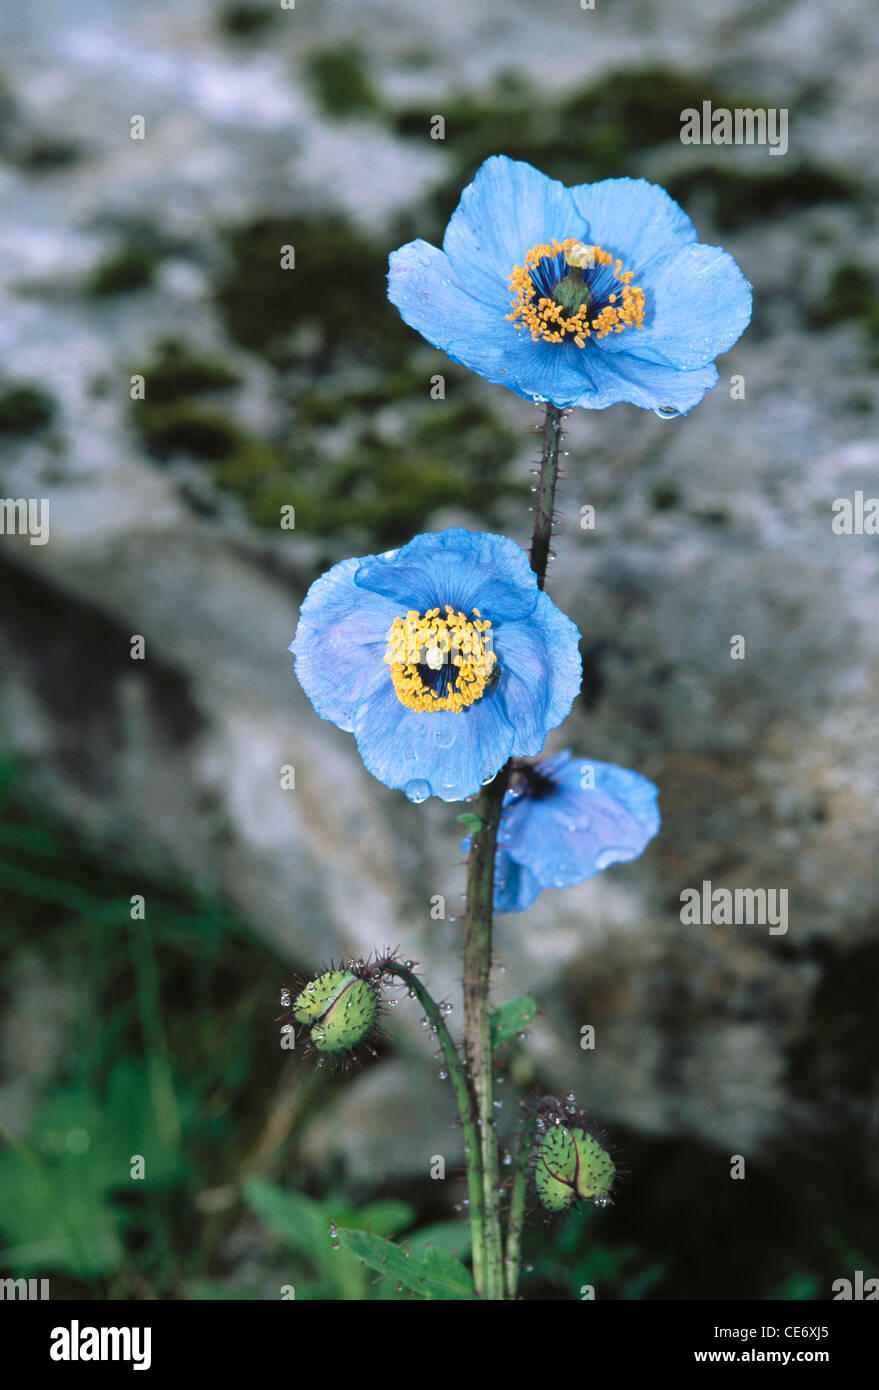 Himalayan flower blue poppy meconopsis betonicifolia valley of himalayan flower blue poppy meconopsis betonicifolia valley of flower uttaranchal india mightylinksfo